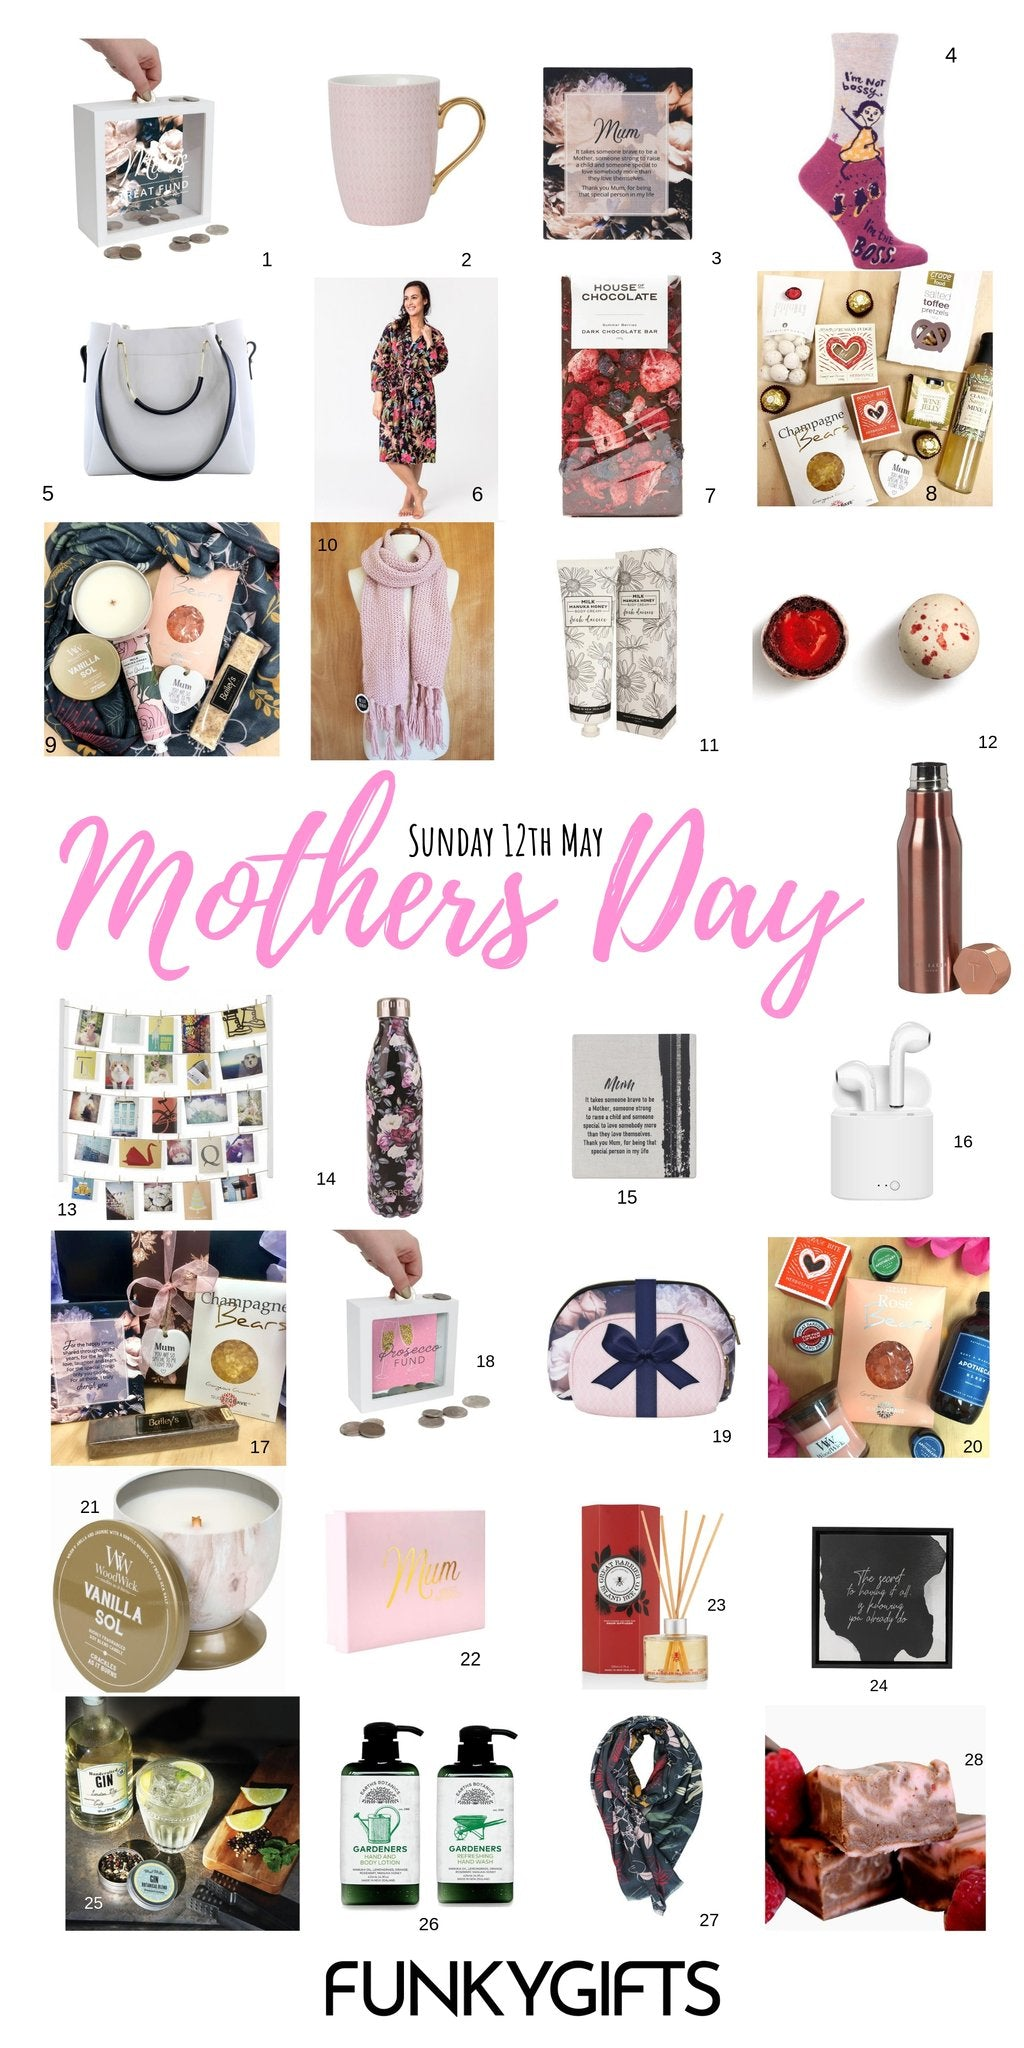 Ultimate Mothers Day Gift Guide 2019 - Top 28 Gifts For Mum